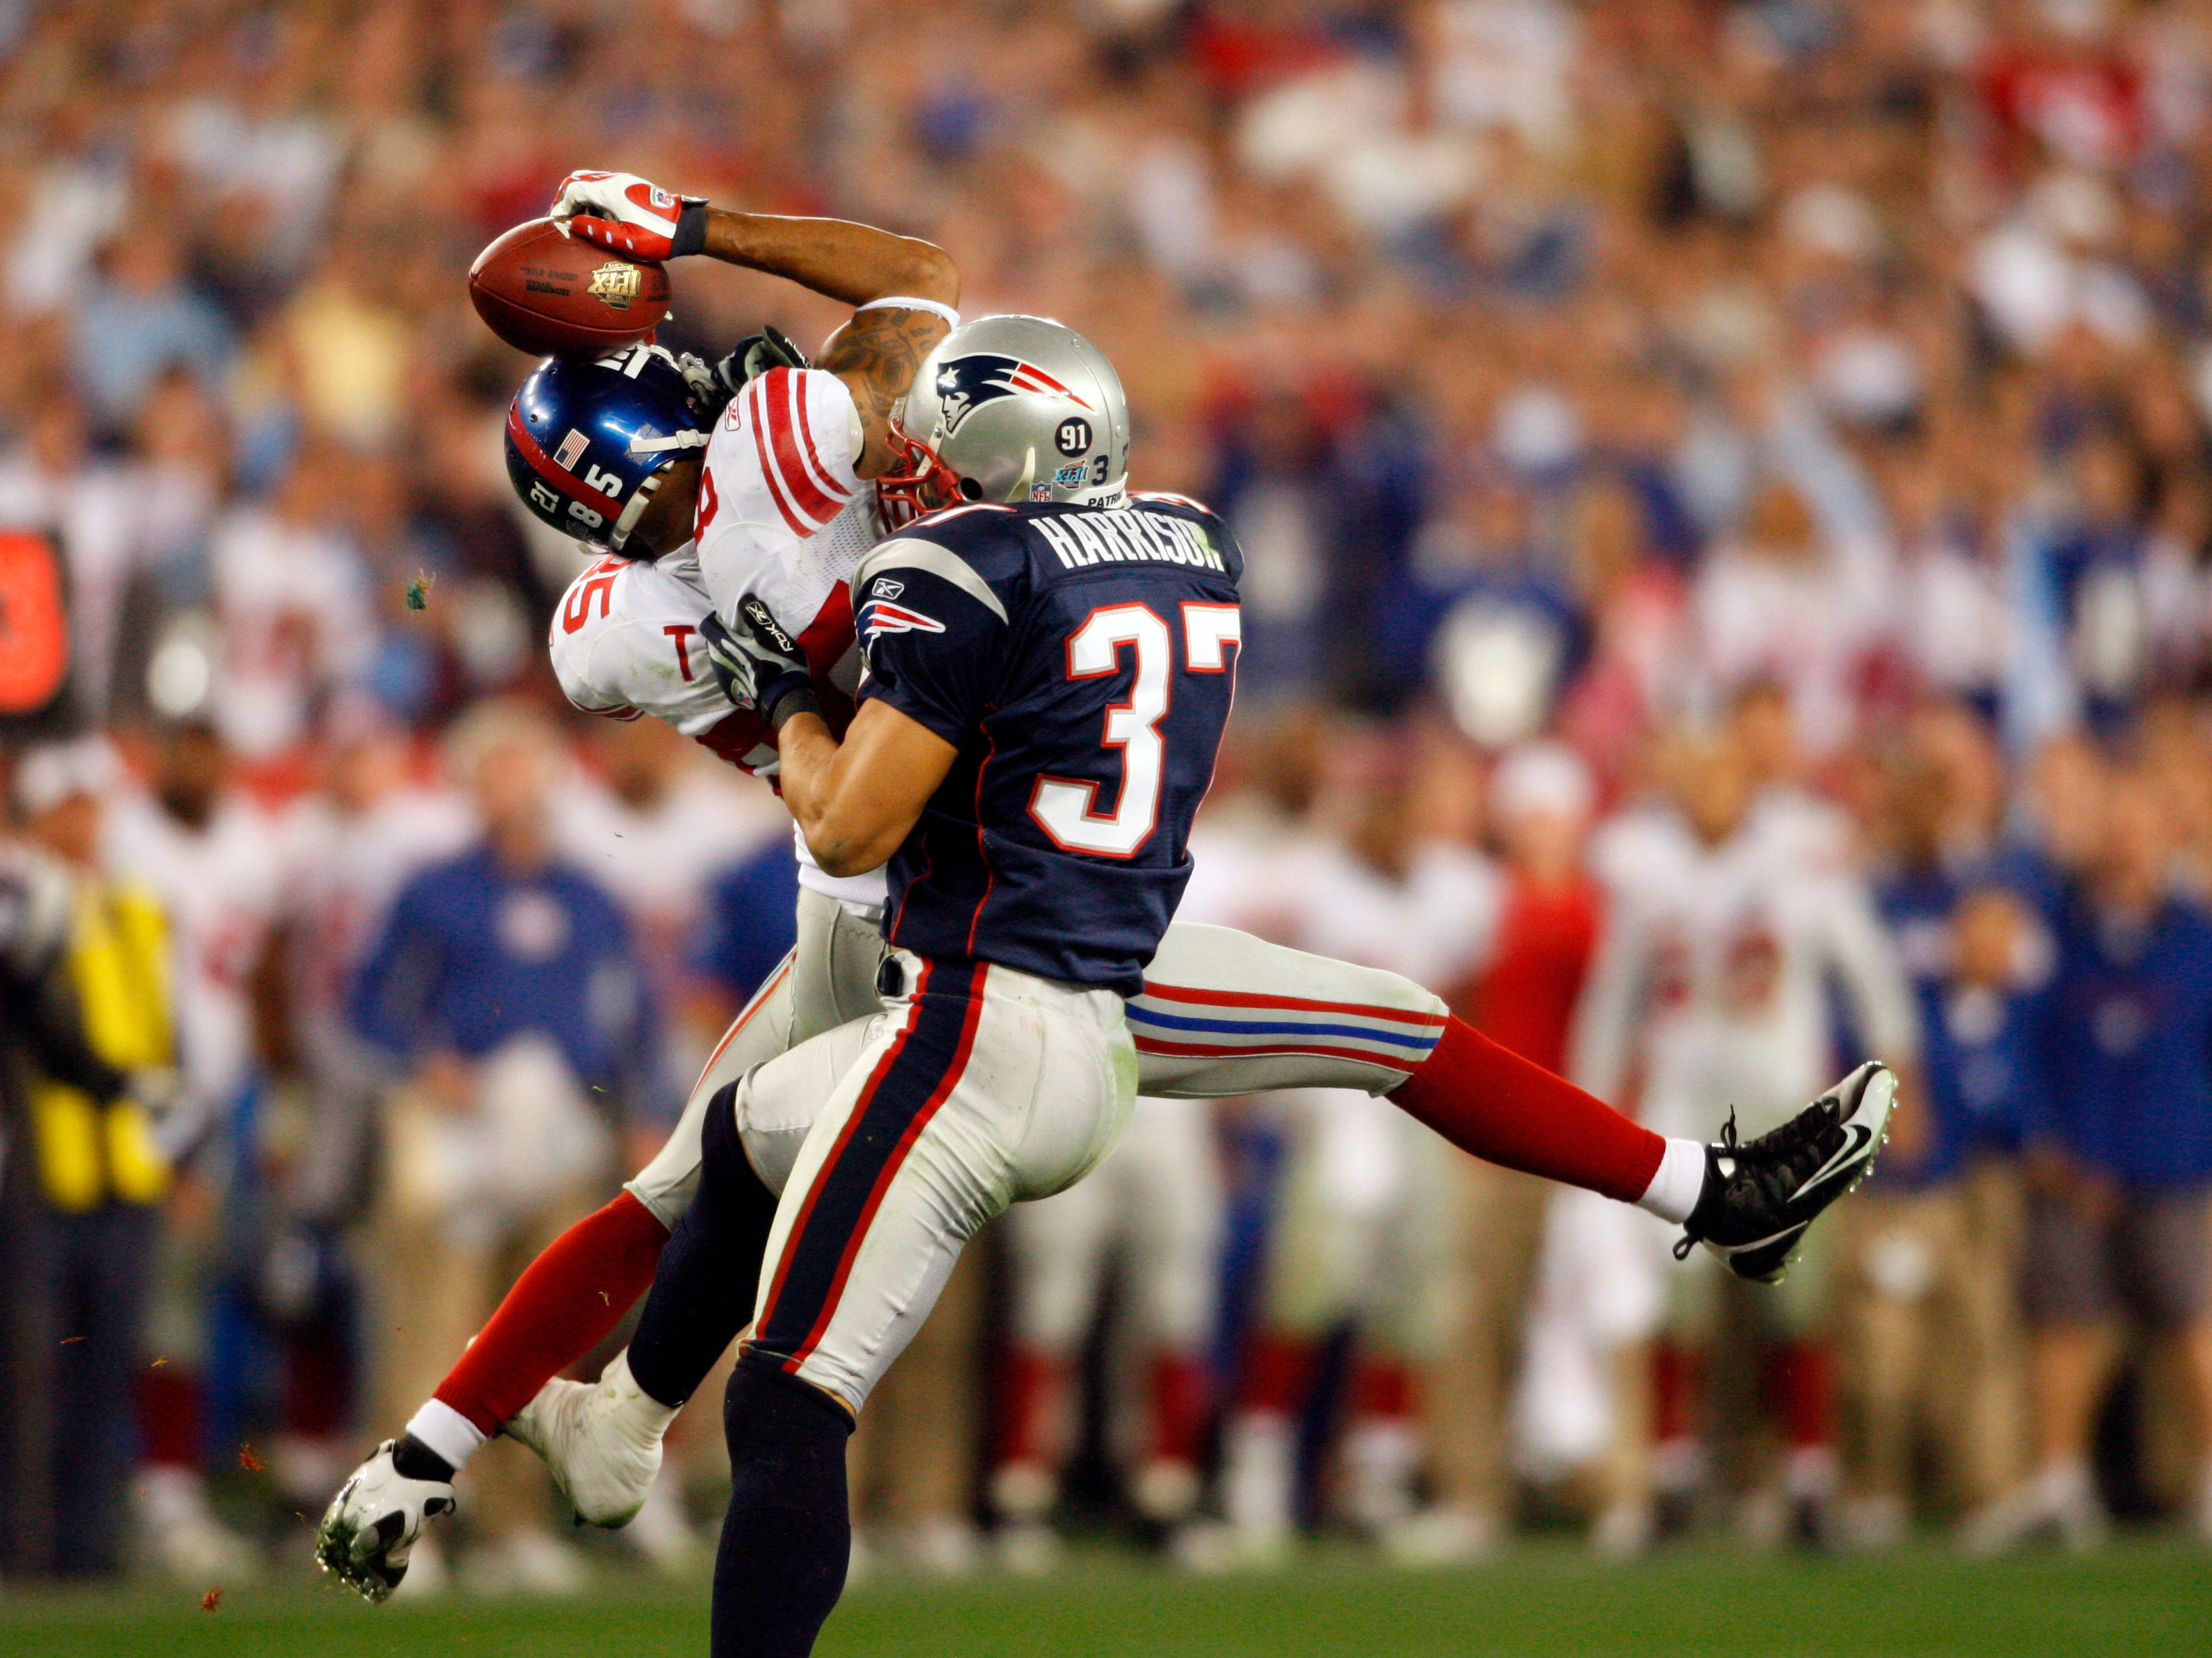 "The Patriots went to Super Bowl XLII with an undefeated season. They were about to match the '72 Dolphins, but were denied that feat by what is considered the greatest Super Bowl play of all time. The New York Giants were losing 14-10, and with 1:15 left on the clock QB Eli Manning threw the ball 32 yards to WR David Tyree. Tyree made ""the helmet catch"" and secured the Giants position that allowed them to score a touchdown and win the game. (pictured: Feb, 3, 2008; Glendale, AZ, USA; New York Giants wide receiver David Tyree (85) hauls in a catch to sustain the game winning drive defended by New England Patriots defensive back Rodney Harrison (37) in Super Bowl XLII at University of Phoenix Stadium. The Giants defeated the Patriots 17-14.)"